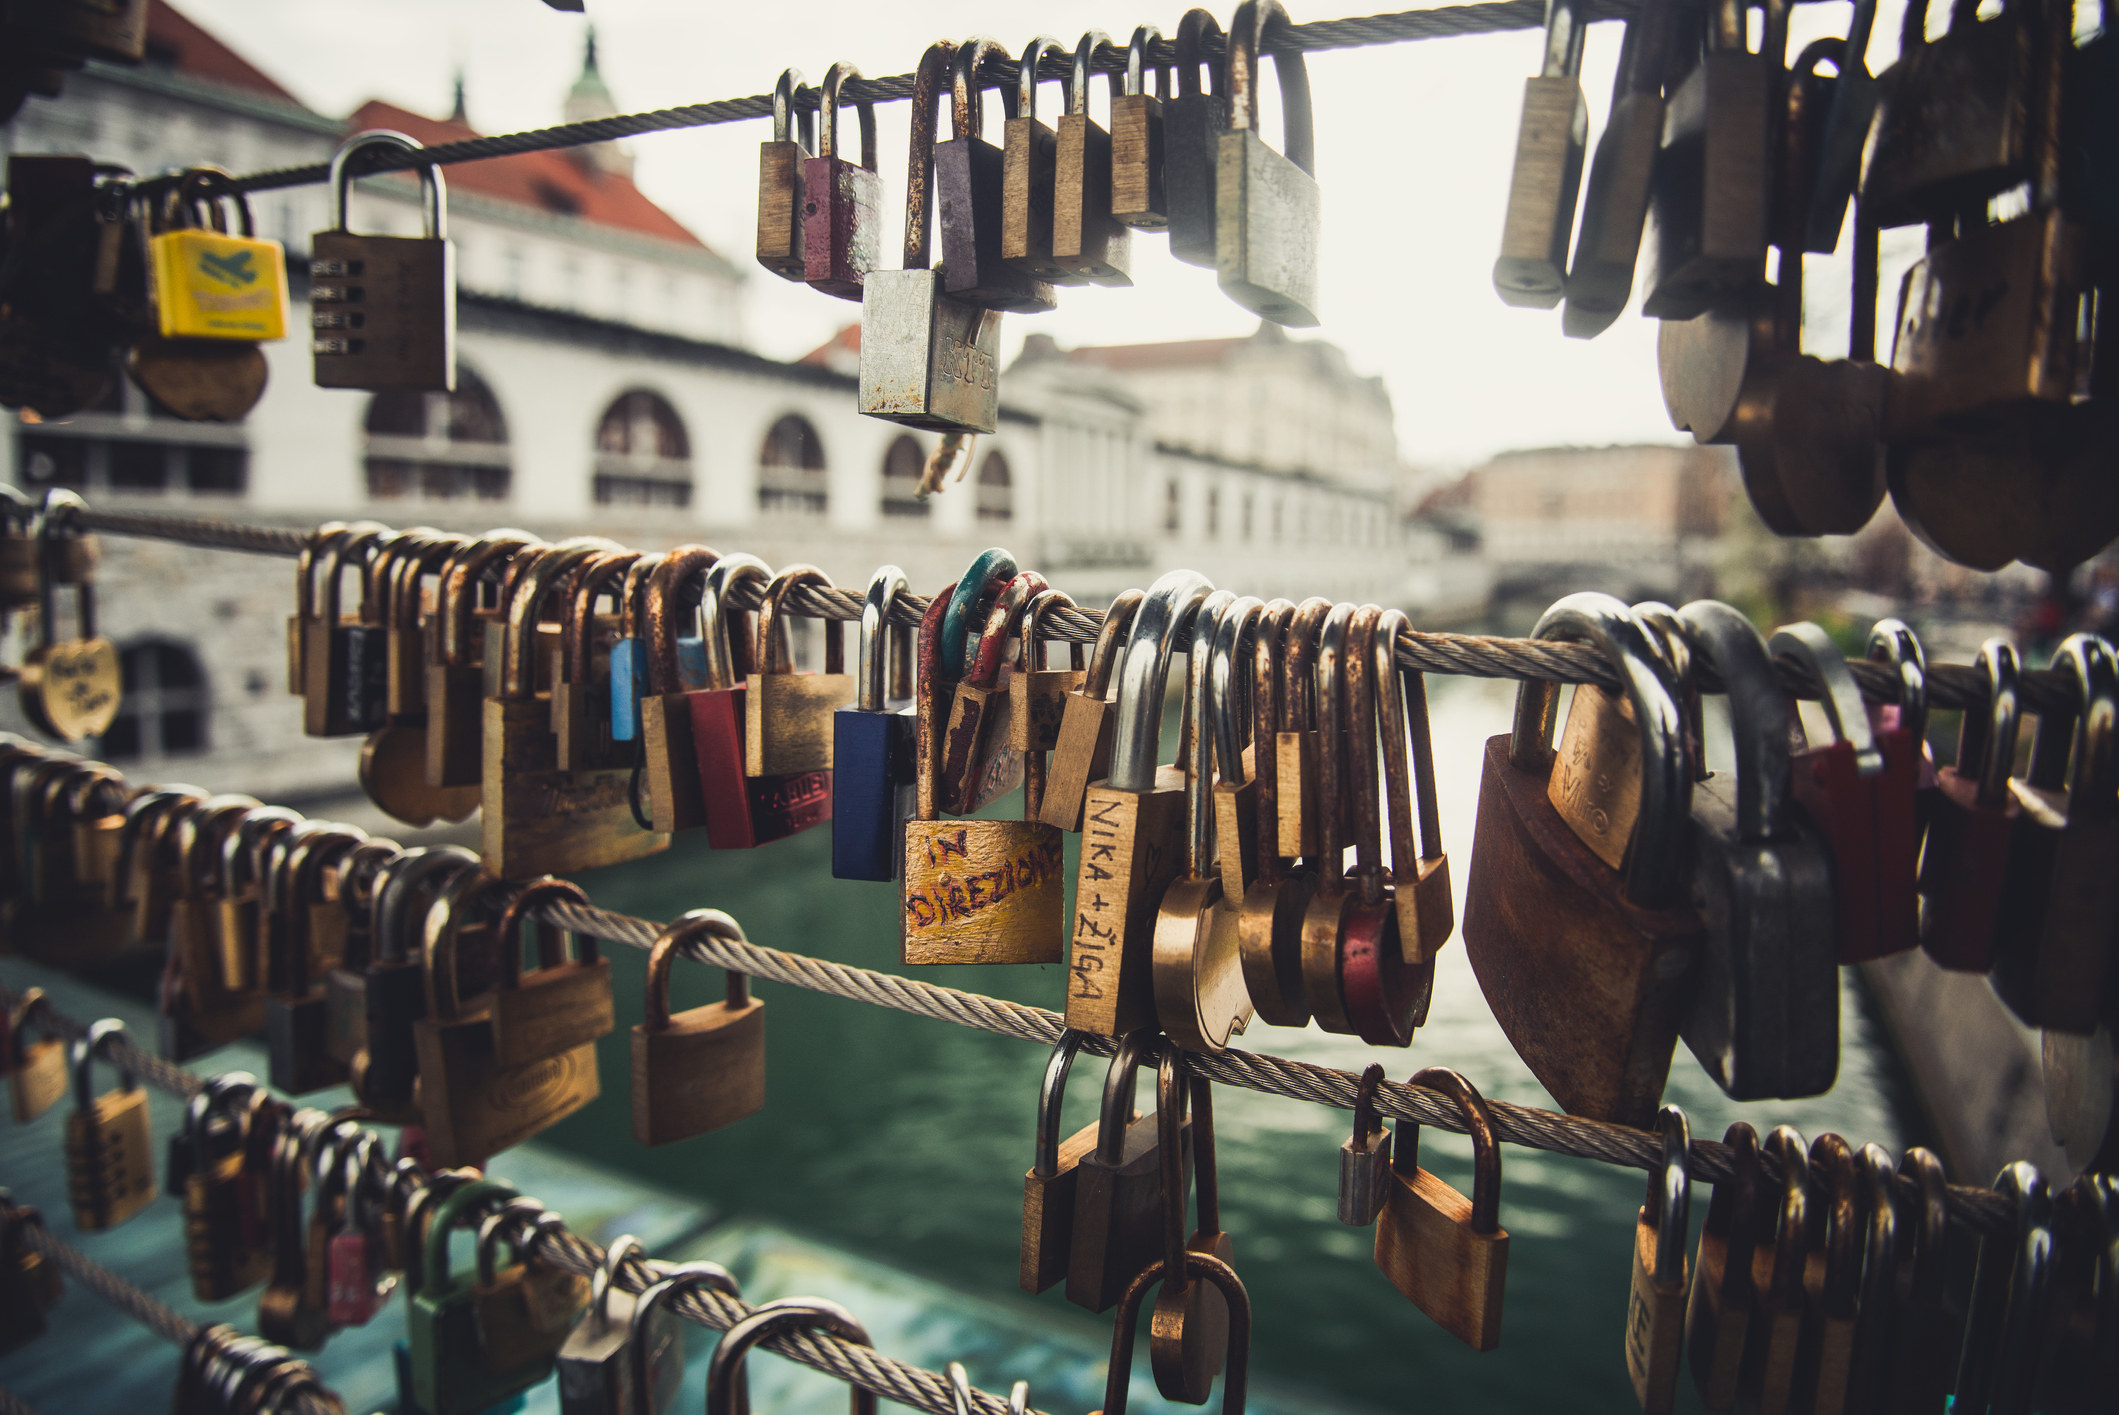 A bridge with many locks attached to it,